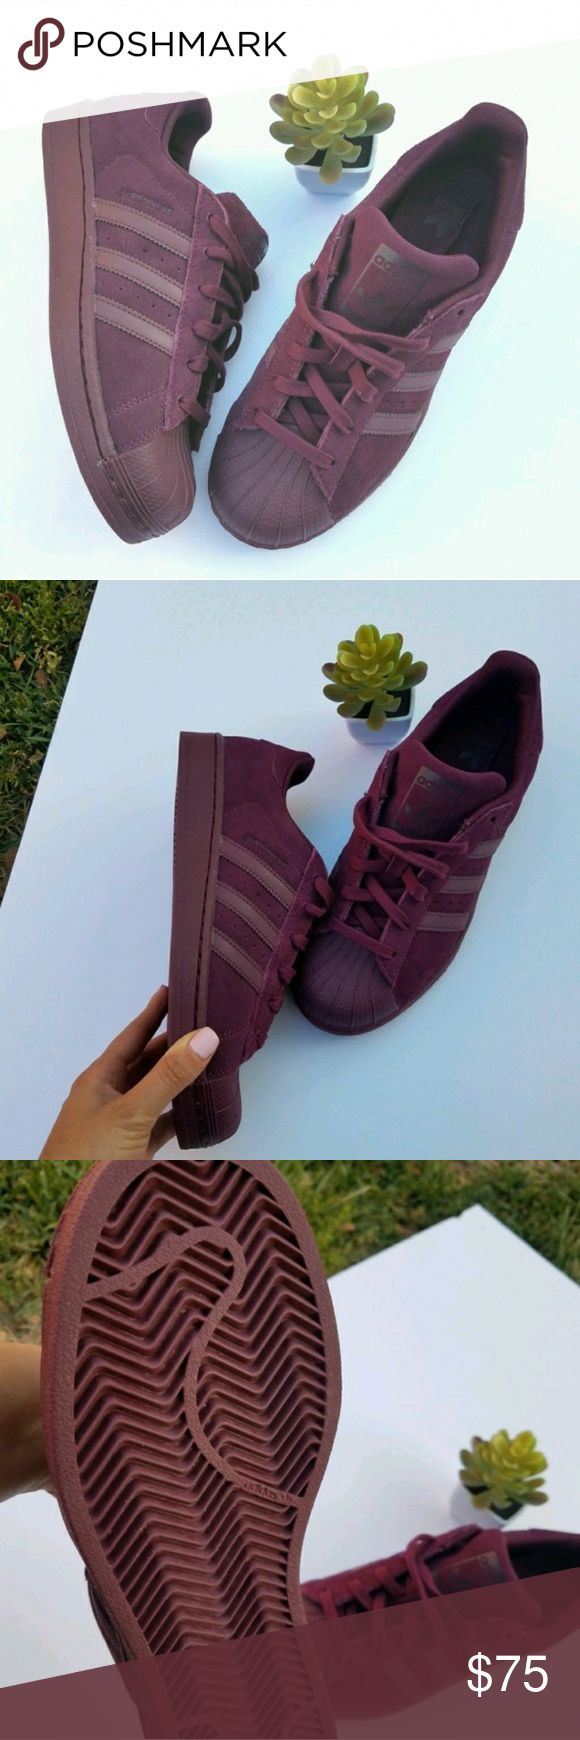 New Adidas Superstar Original-8 A cool all plum superstar original shell toe sneakers. Size 6 youth fits like a 8 in womens. New with box (Box got messed up through delivery). Adidas Shoes Sneakers